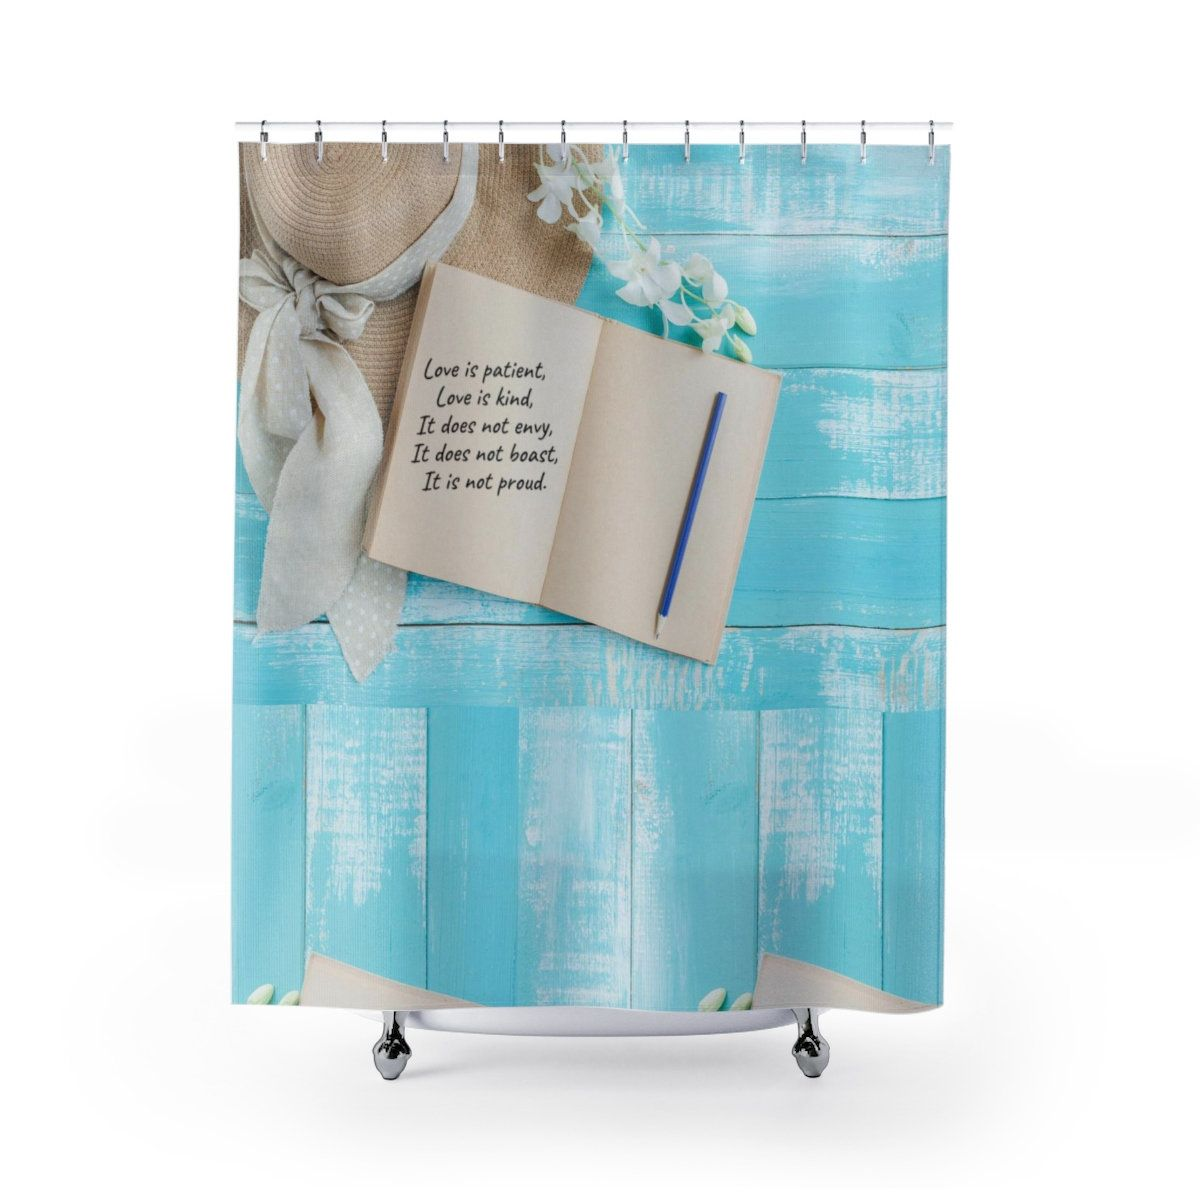 Love Shower Curtain Scripture Shower Curtain Bible Verse Shower